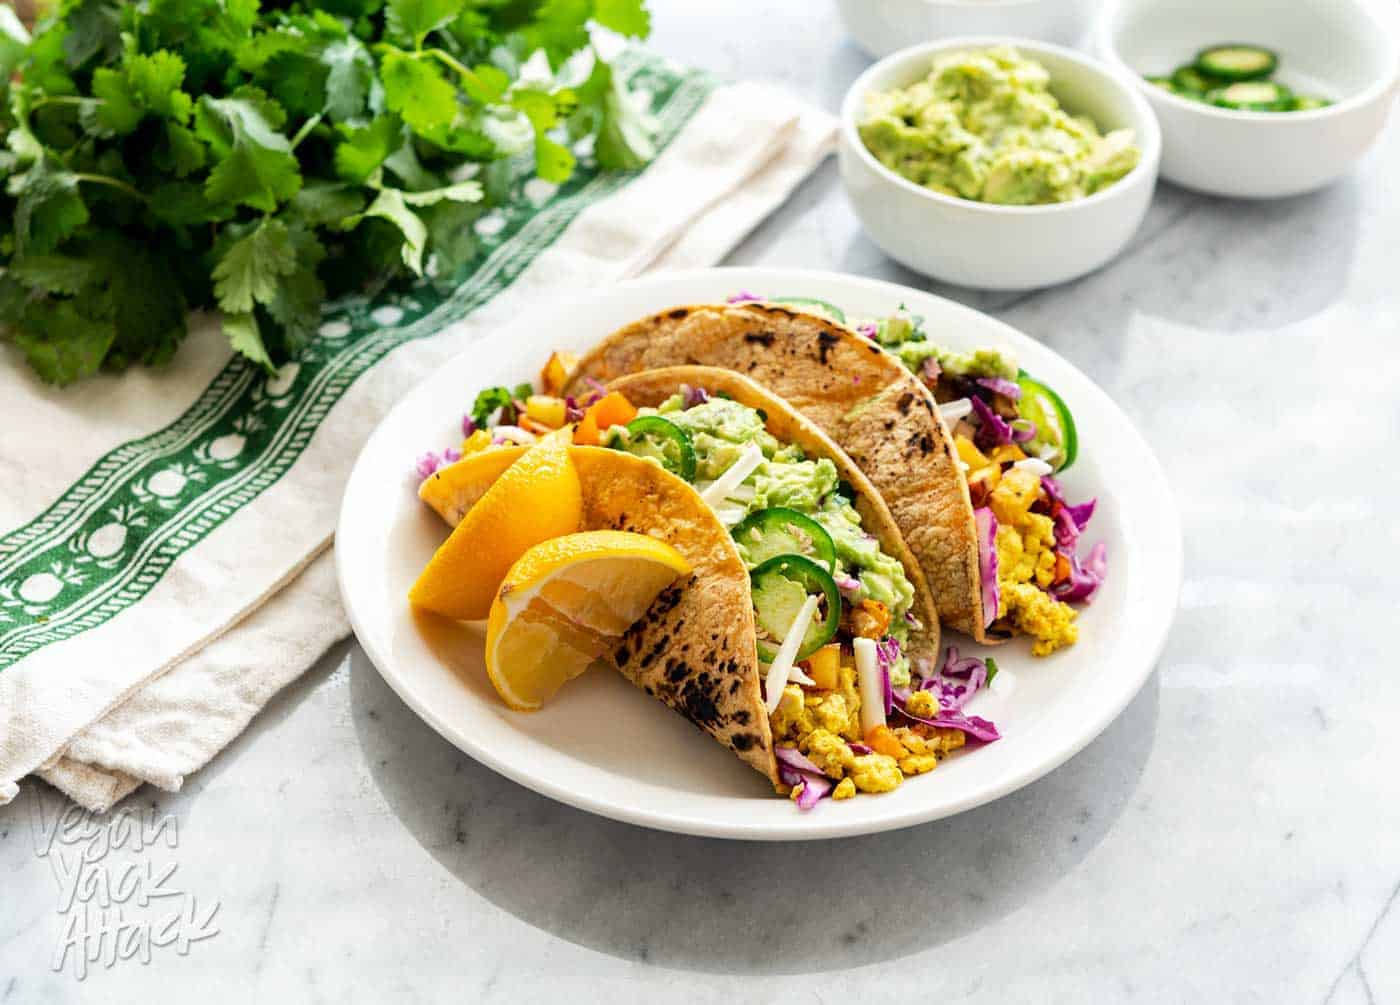 An image of vegan breakfast tacos plated, on a marble table with assorted toppings near it